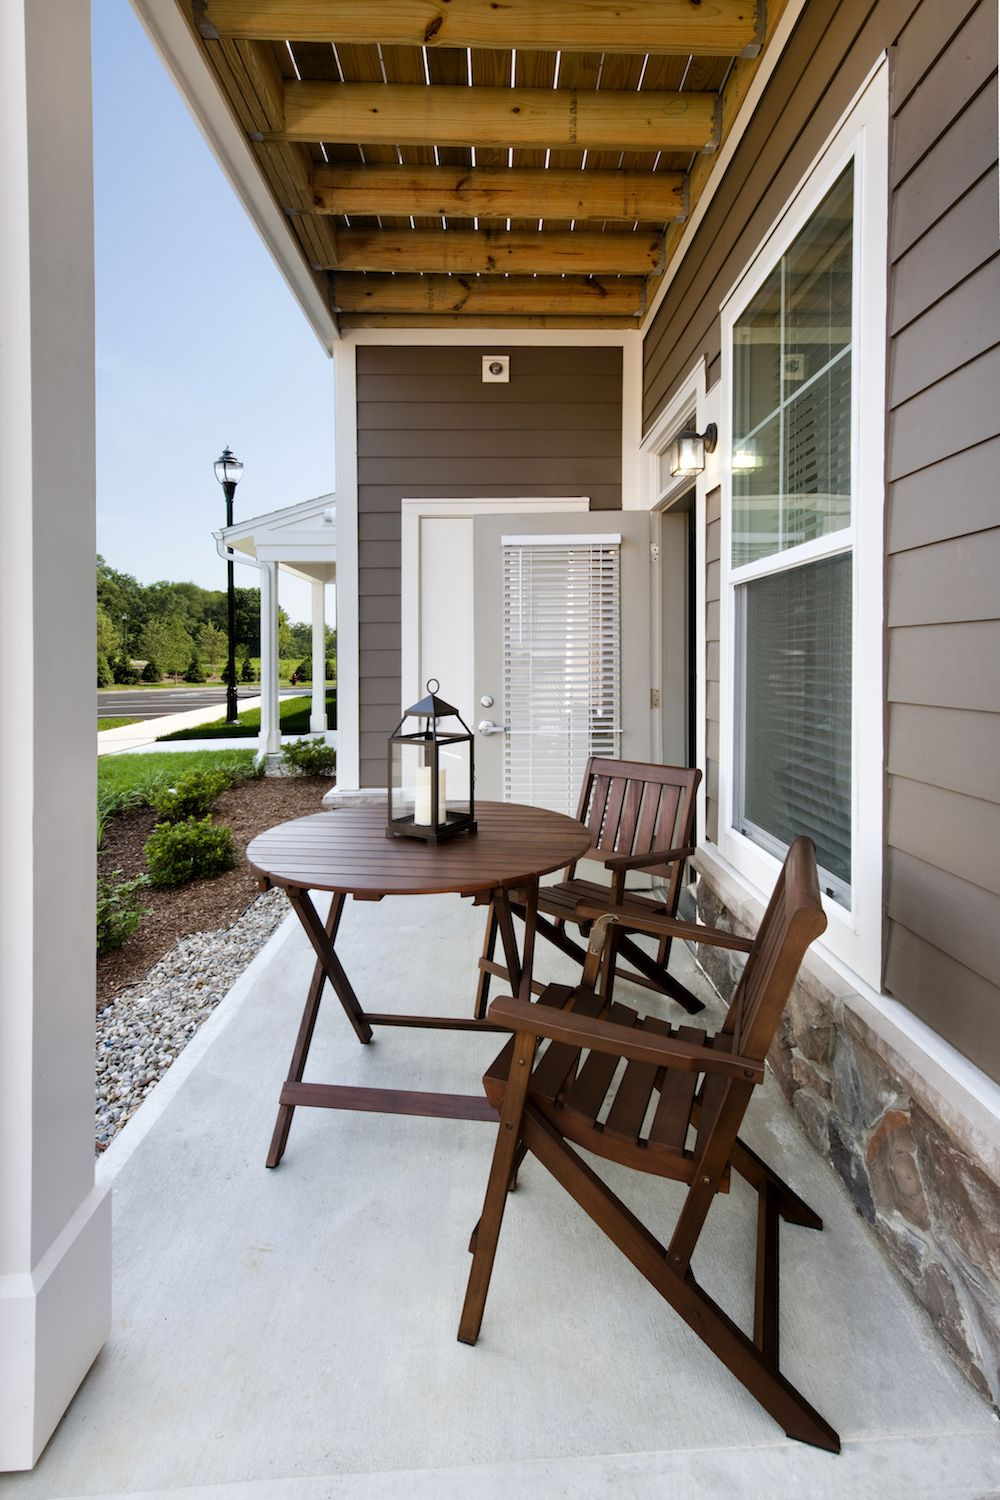 Rent Luxury Apartment In Hopkinton Ma Alta Legacy Farms Luxury Apartments Patio Best Places To Live